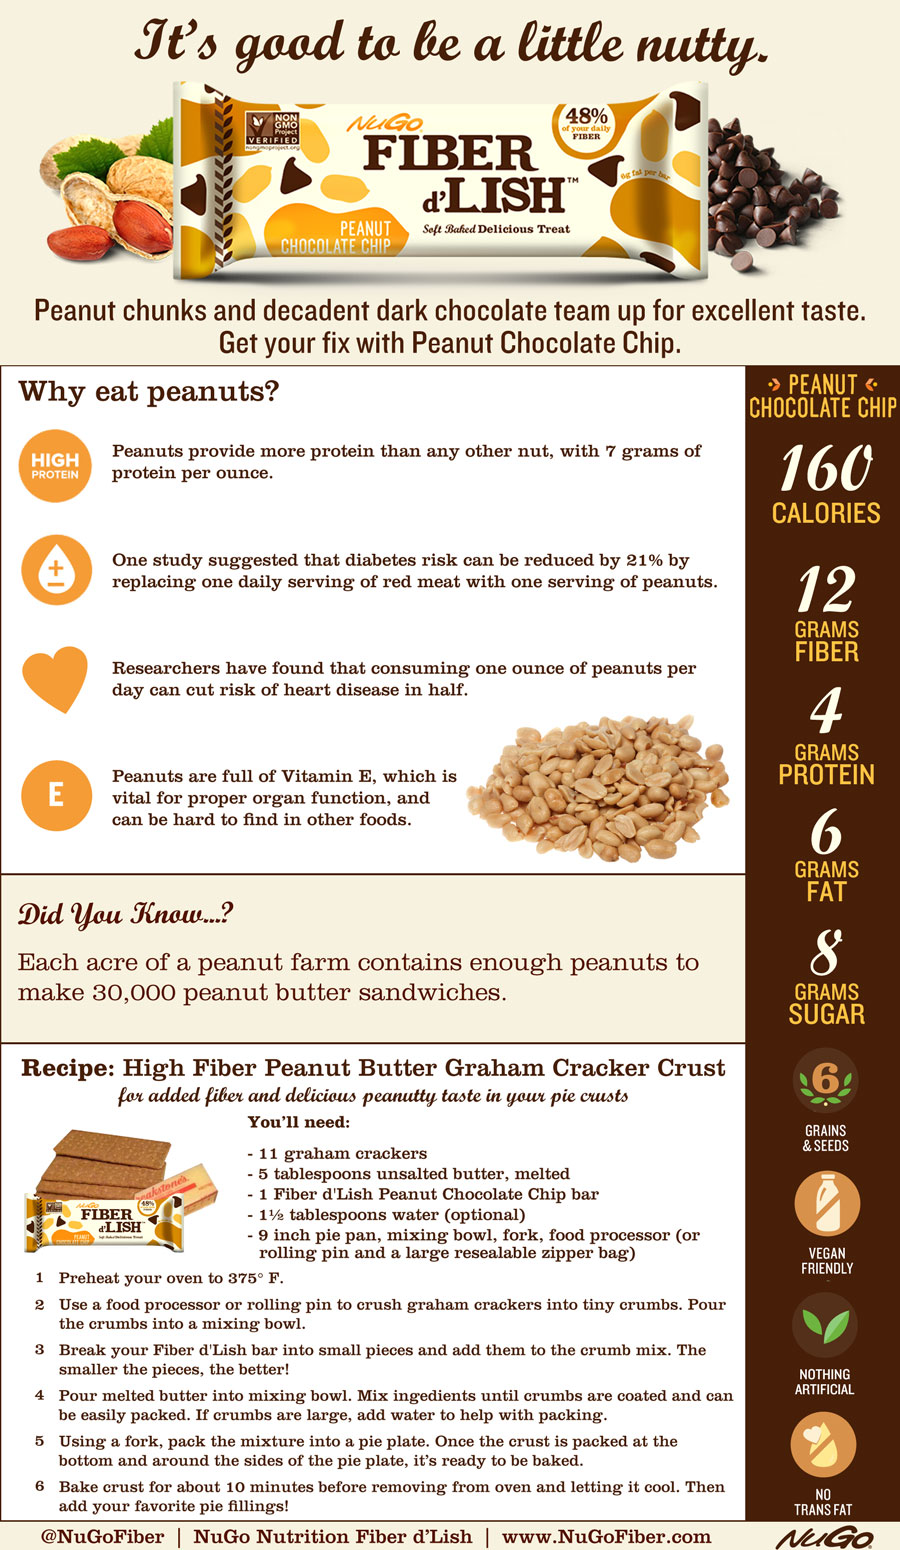 Fiber d'Lish Peanut Chocolate Chip